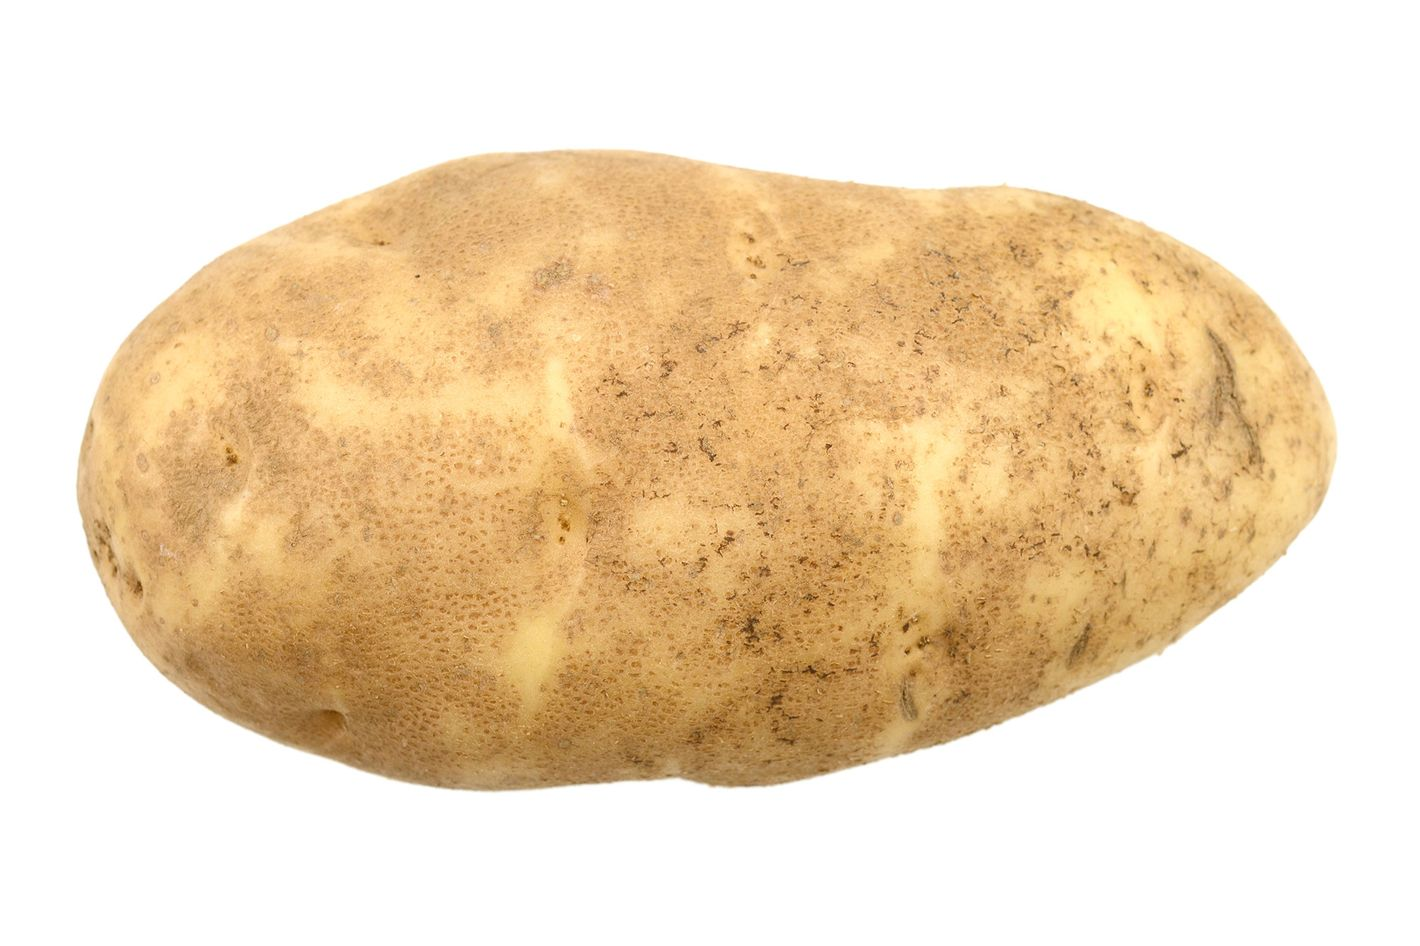 Russet Potato, One Large: Amazon.com: Grocery &amp- Gourmet Food